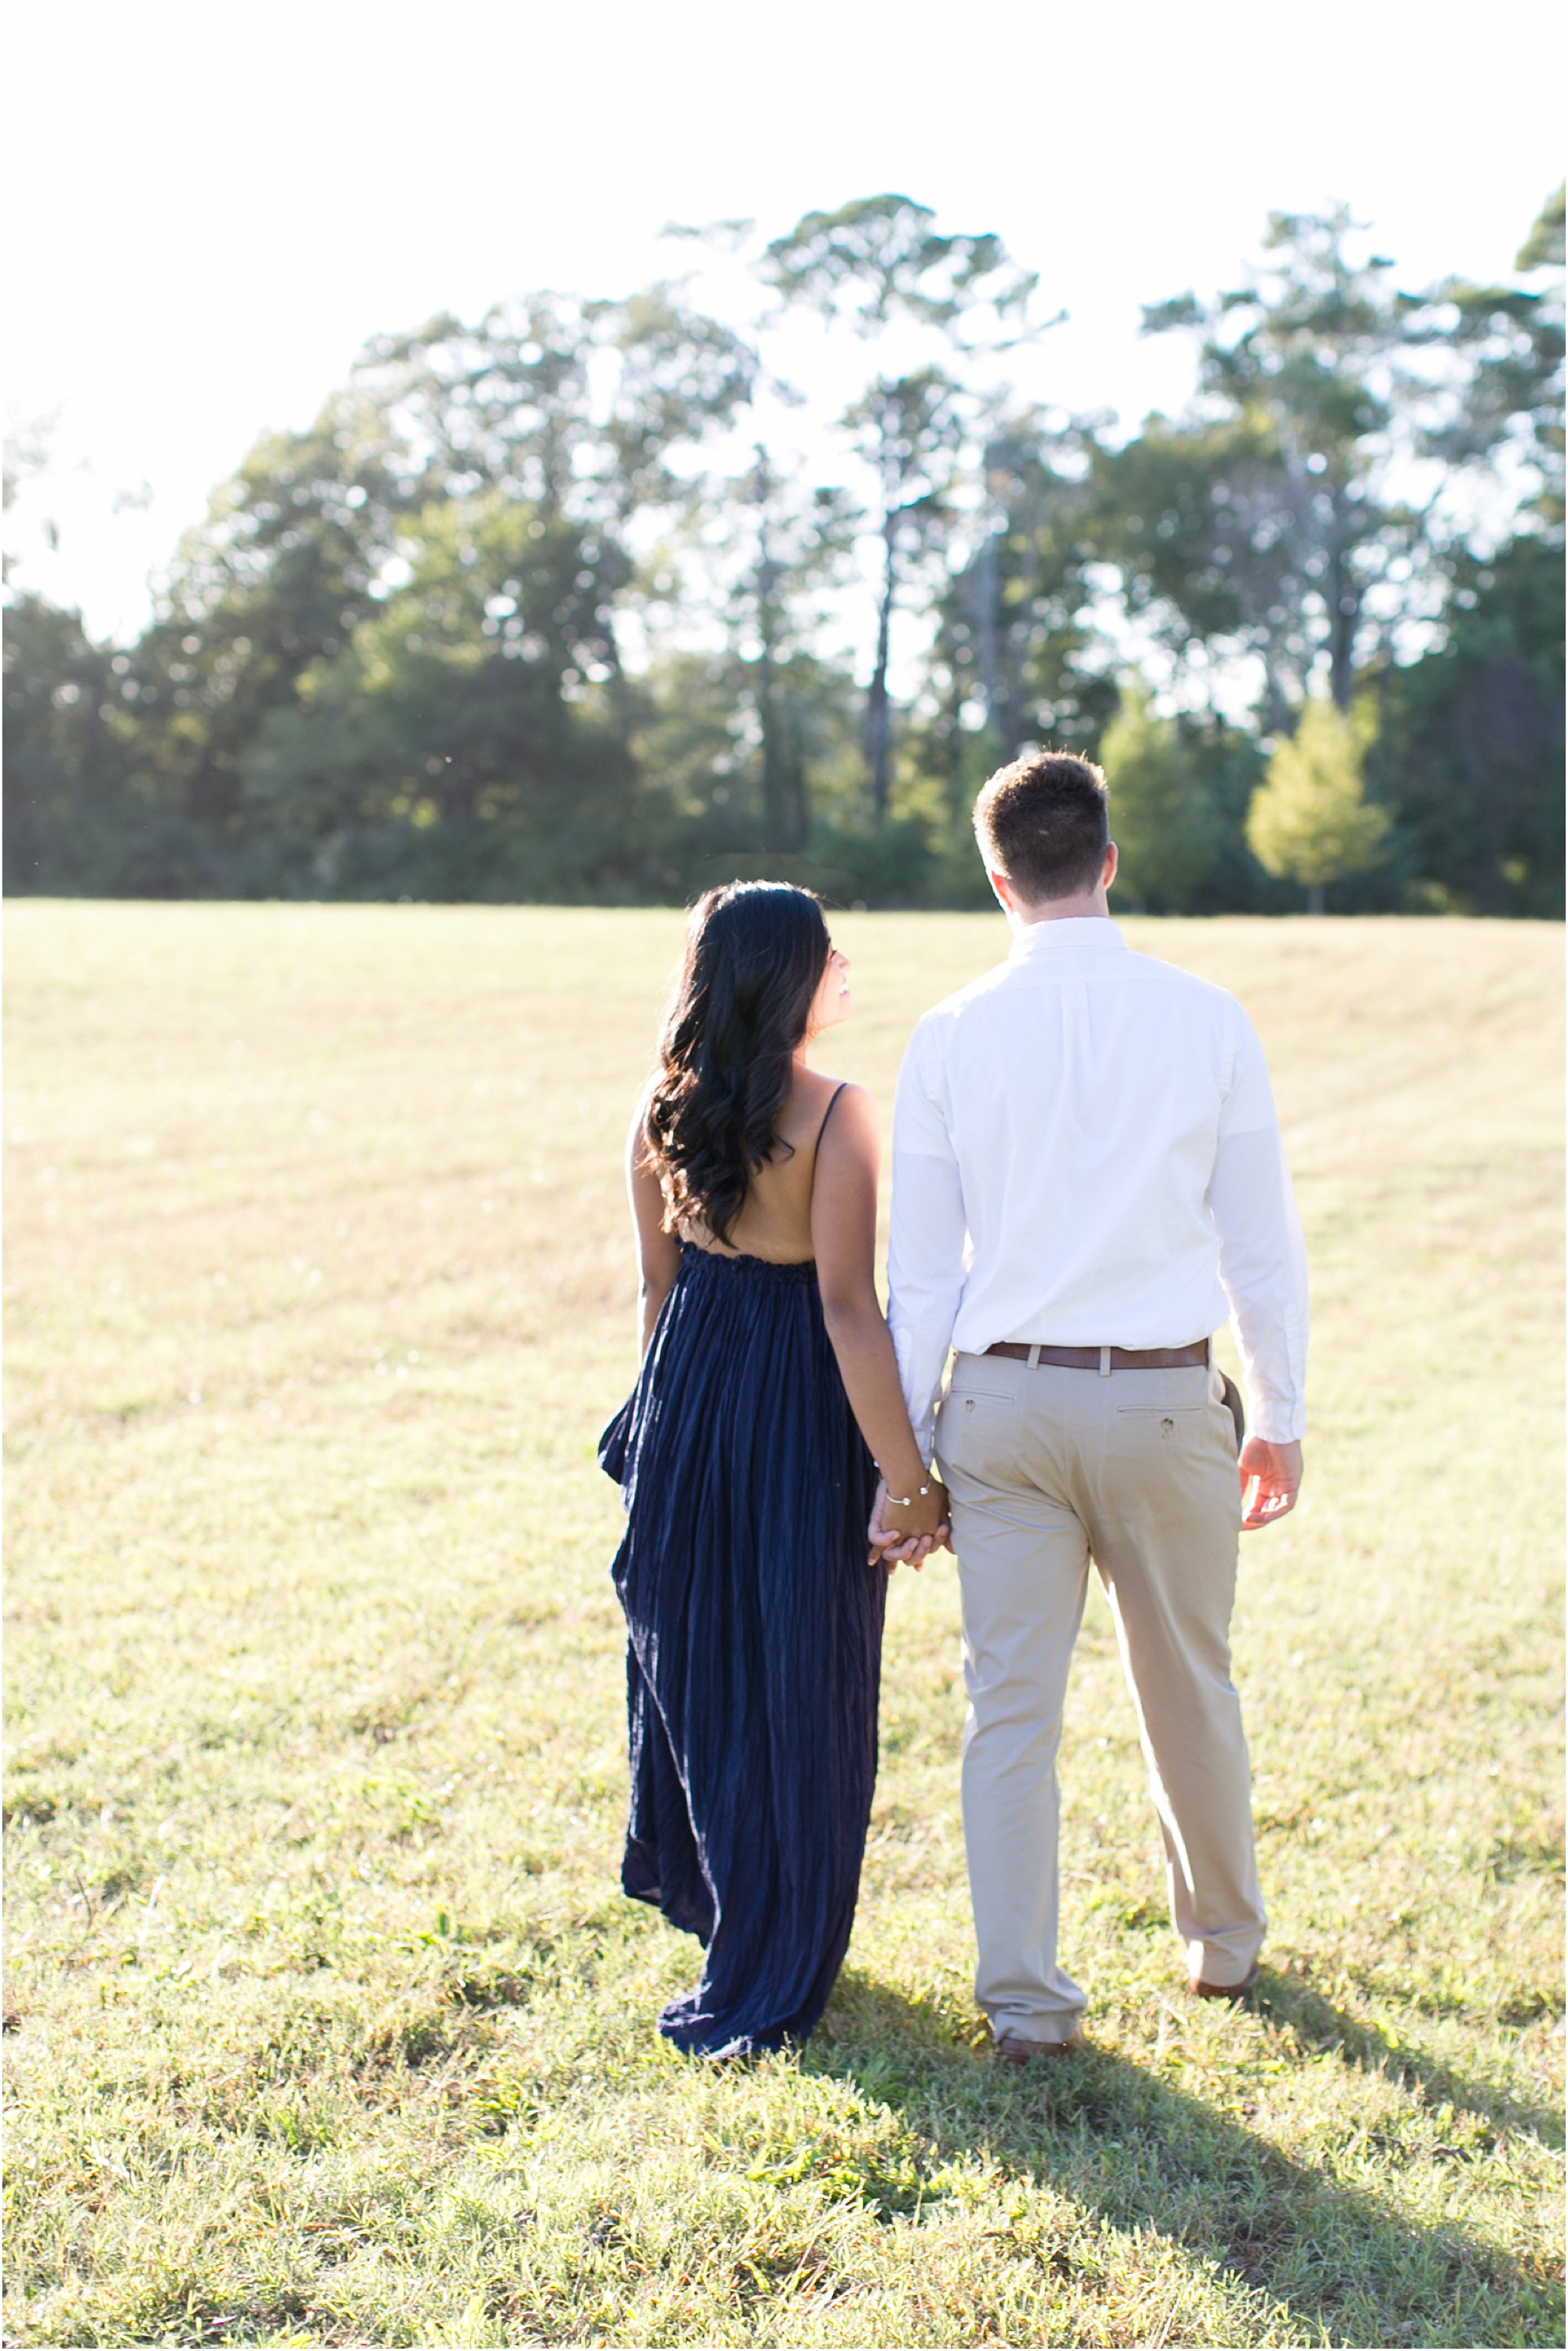 jessica_ryan_photography_virginia_smithfield_historical_downtown_engagement_portraits_candid_authentic_3721